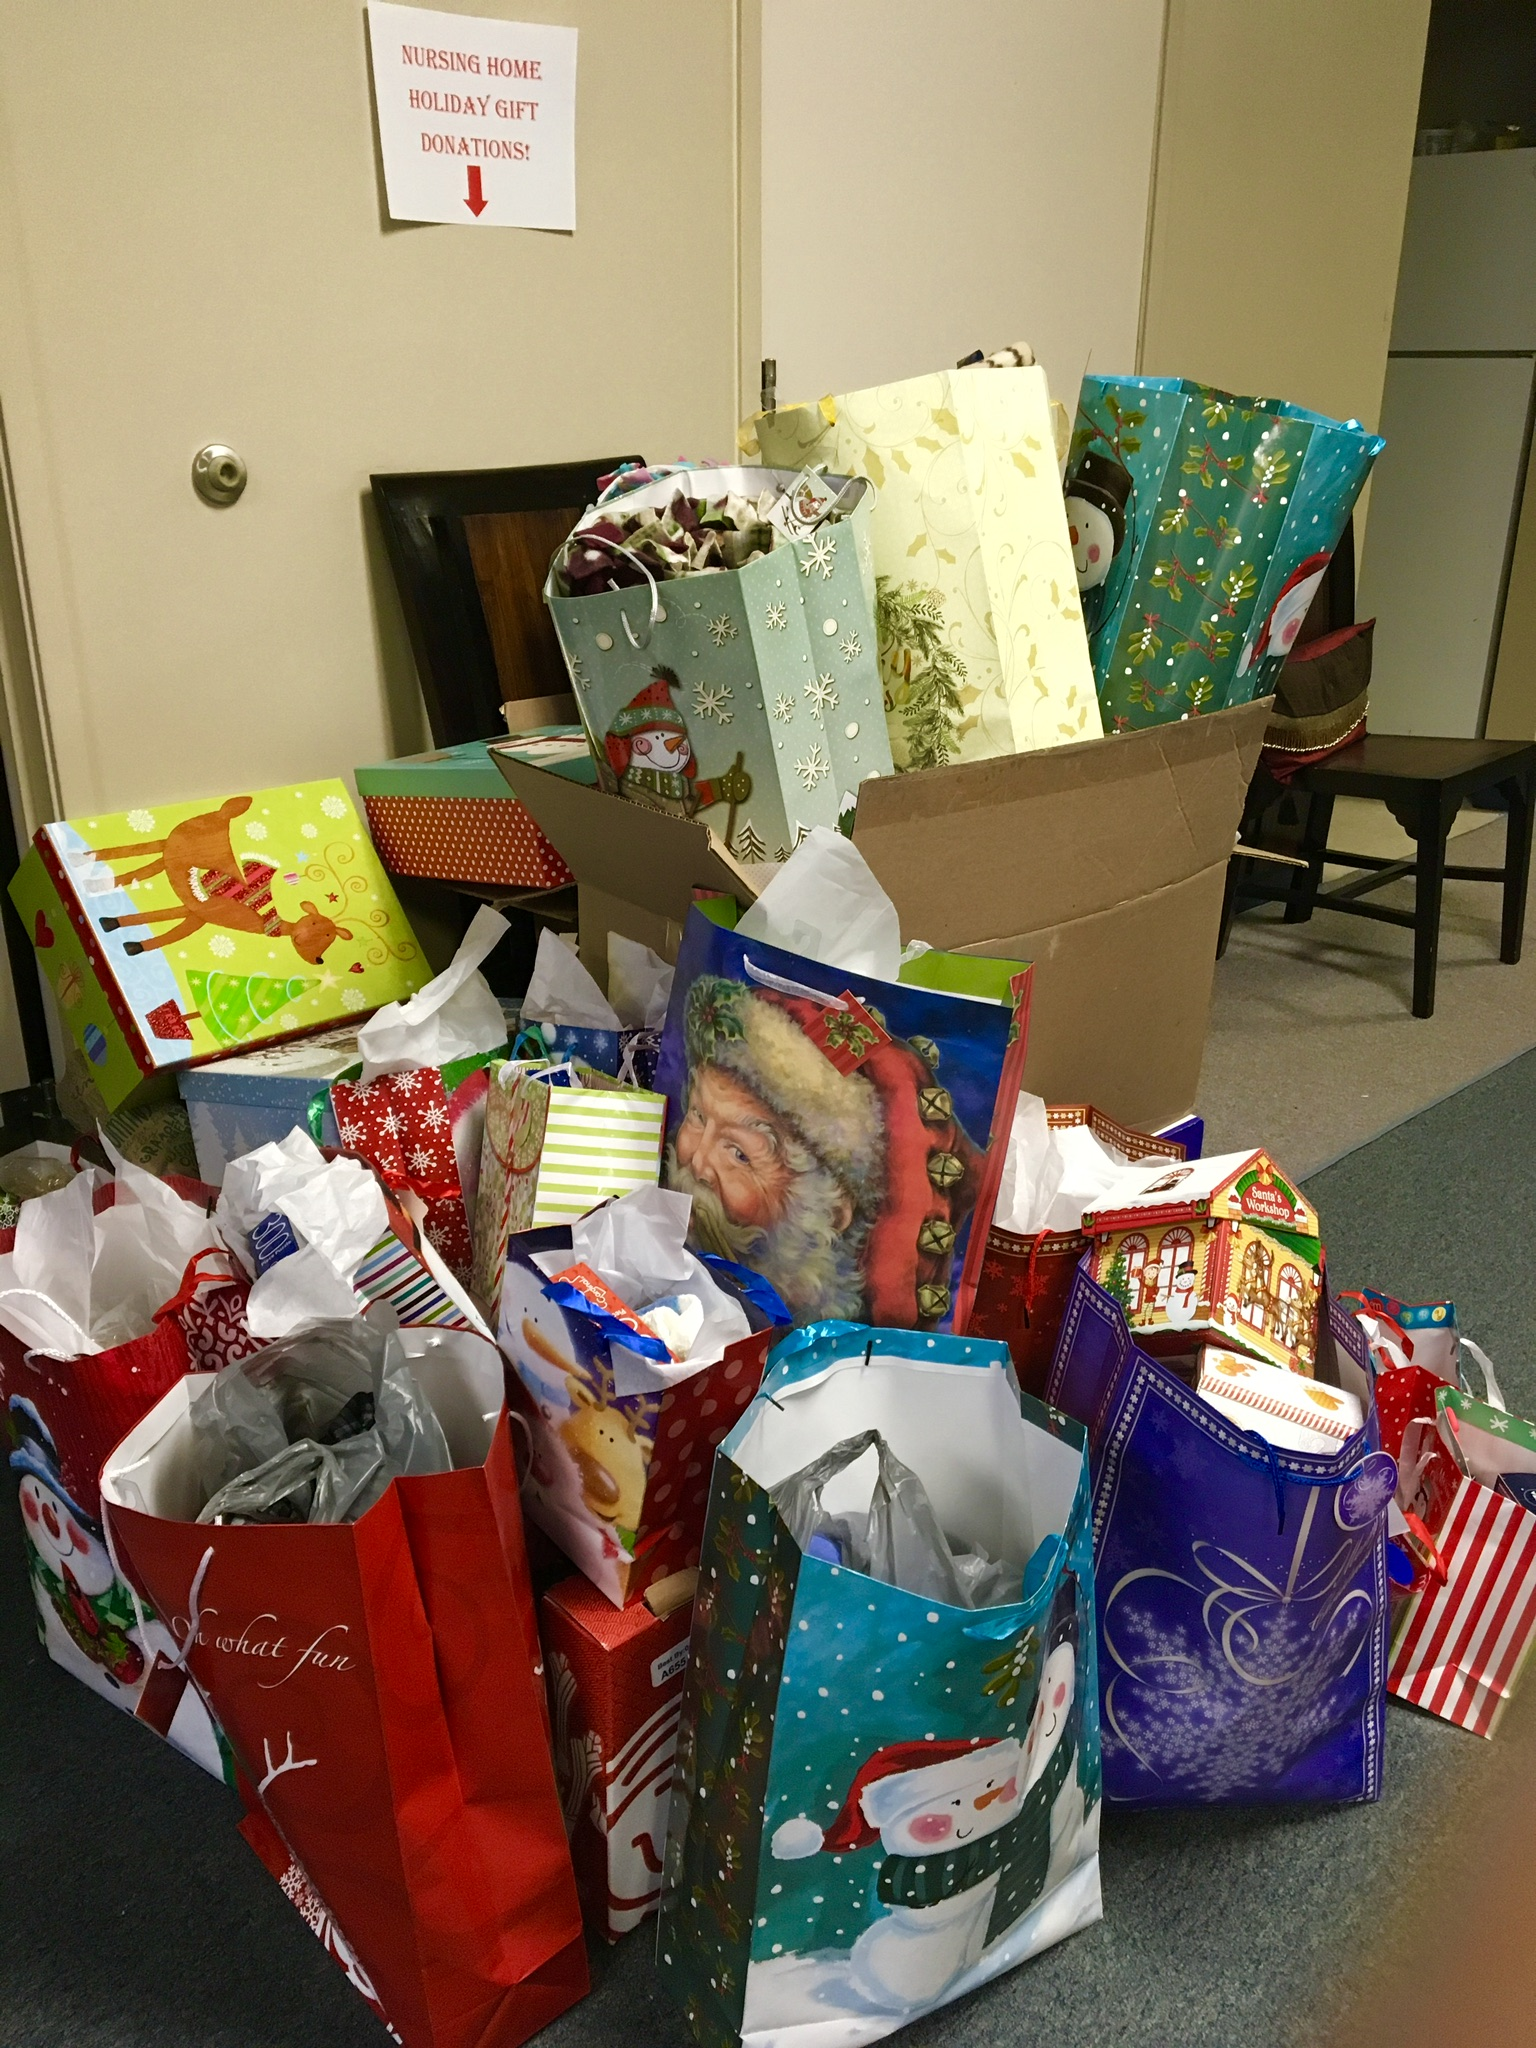 Nursing Home Project 150 Gifts Dozens Of Donors 7 Facilities